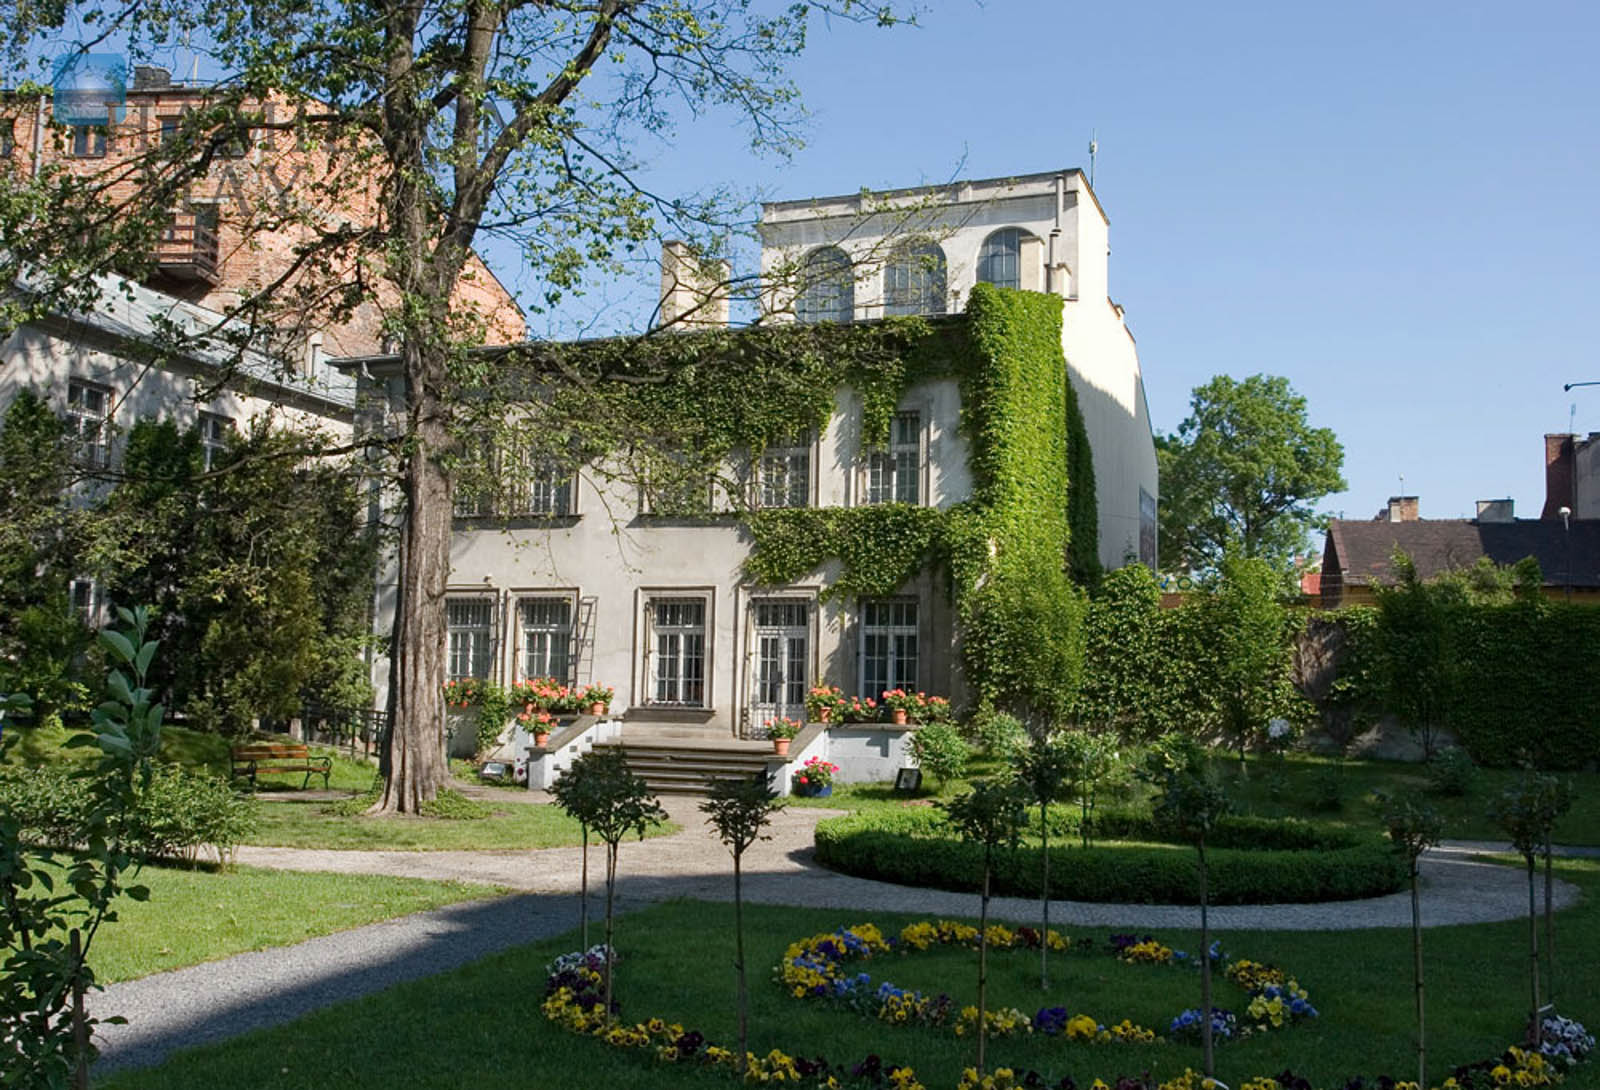 Unique, quiet apartment in a historic townhouse with a beautiful view over the surrounding gardens, in the very center of Krakow Krakow for sale